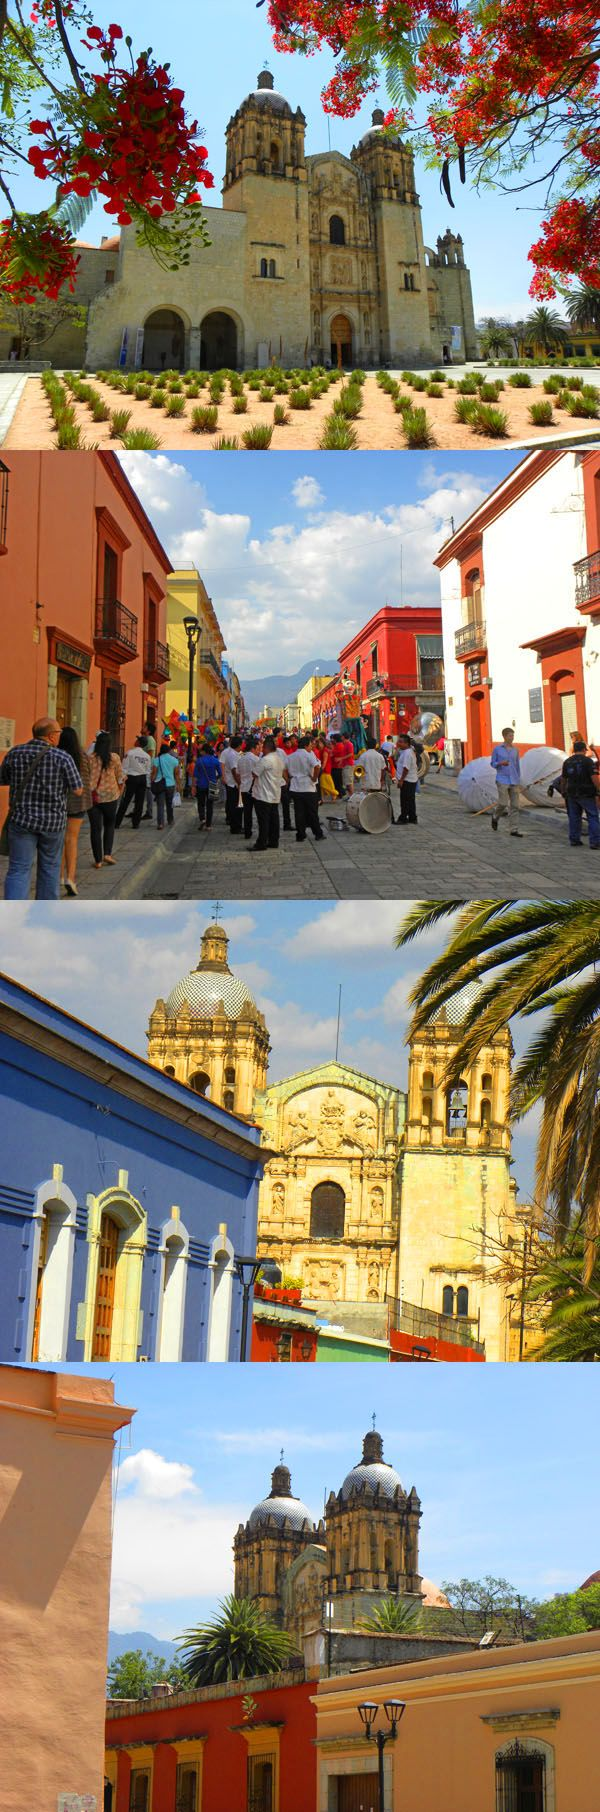 Oaxaca, Mexico: http://bbqboy.net/photo-essay-the-colors-of-oaxaca/ #oaxaca #mexico